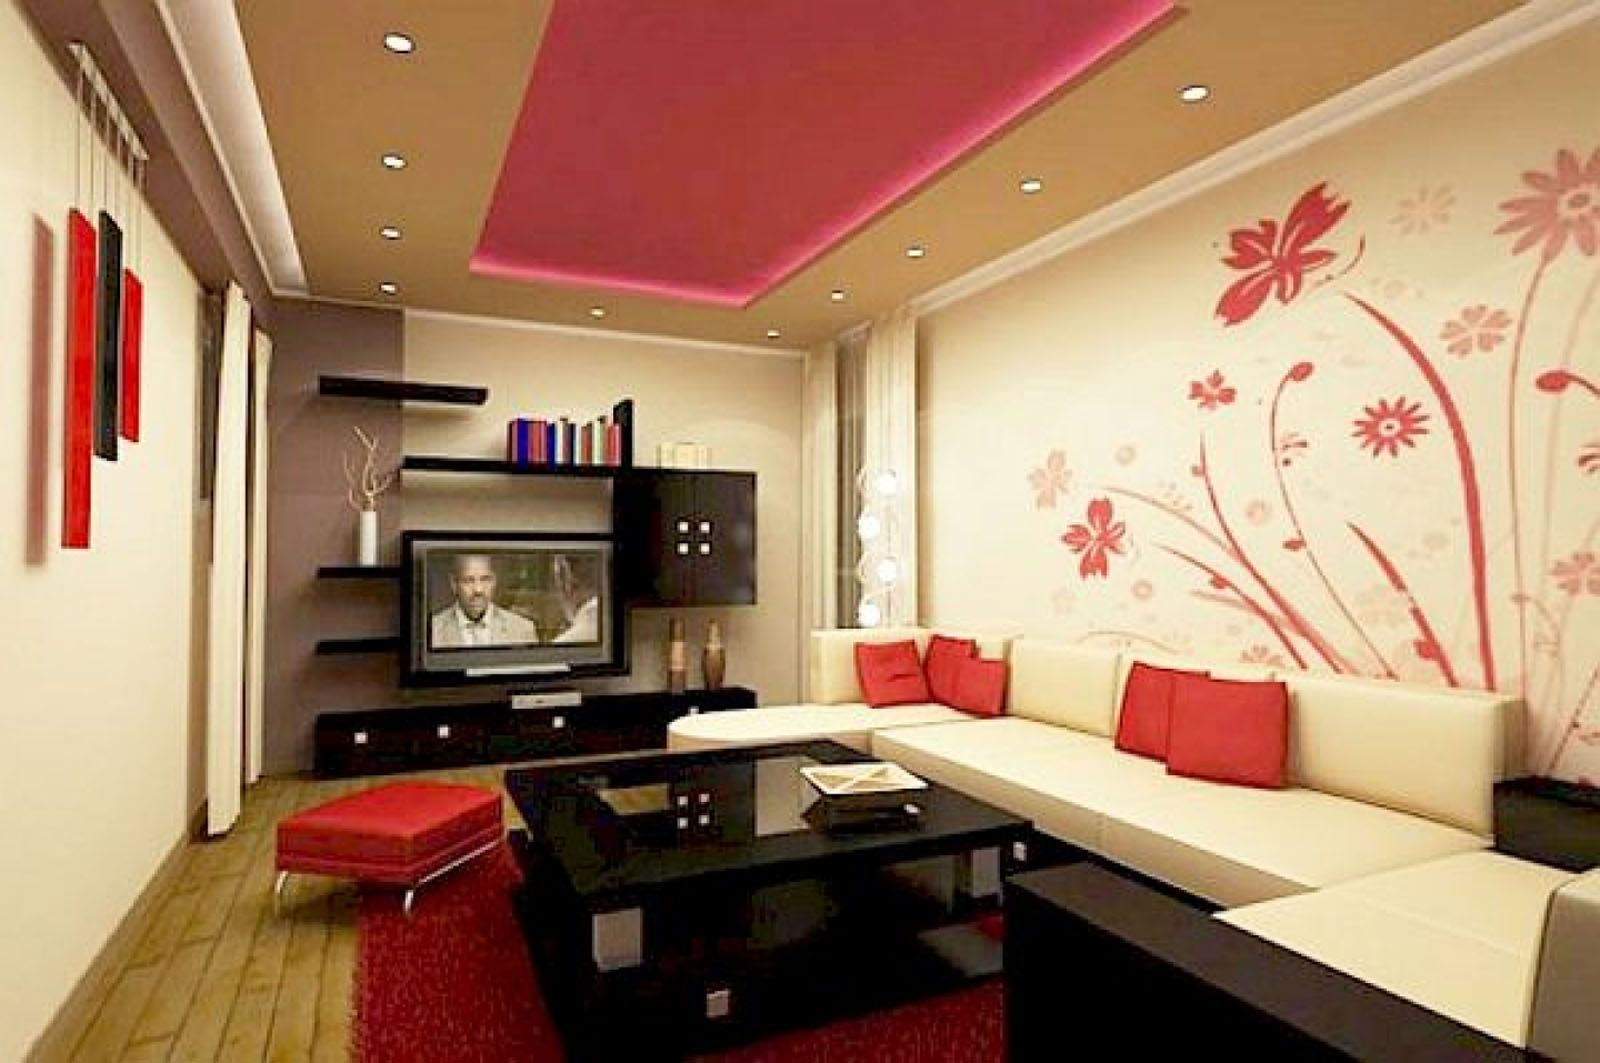 Hervorragend Paint Designs For Living Room Home Design Ideas Inside Paint Ideas For  Living Room Paint Ideas For Living Room With Narrow Space